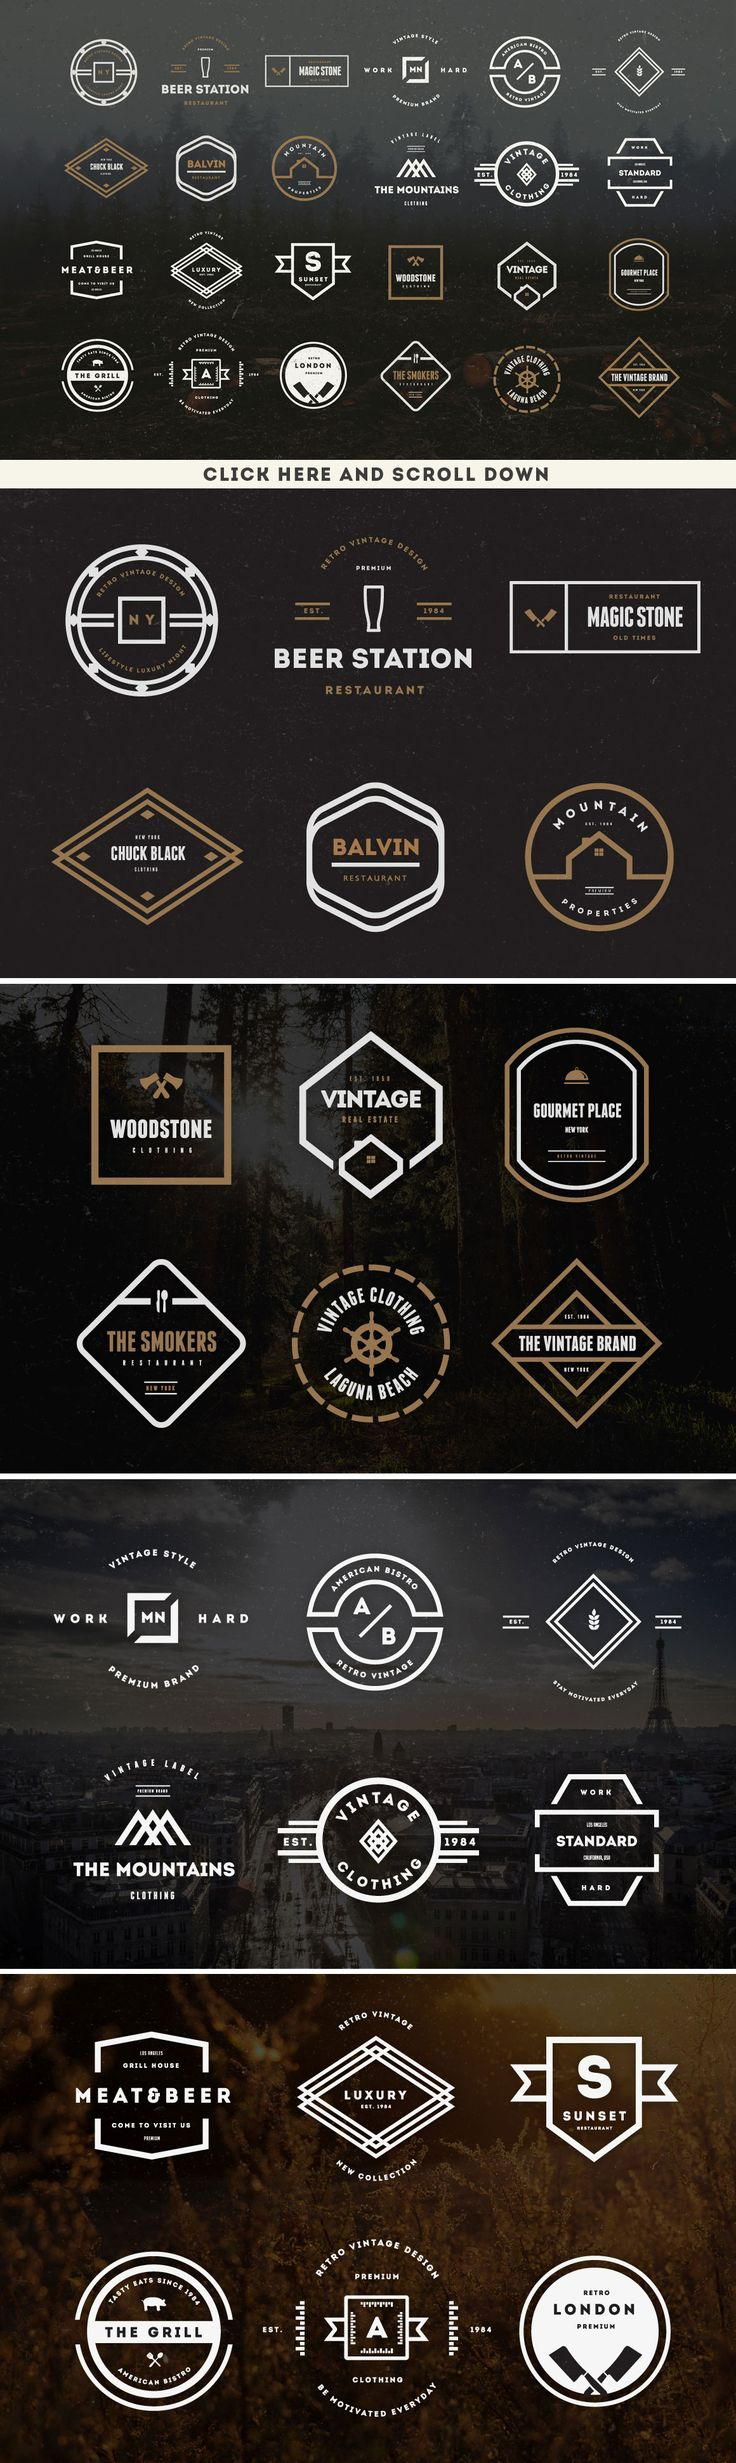 BIG BUNDLE is here with 73 Awesome Vintage Logos and Badges!!! Click on the images and scroll down to see ALL THE LOGOS!!! You'll receive 7 Items at only $20 for Limited Time!!! THIS IS WHAT